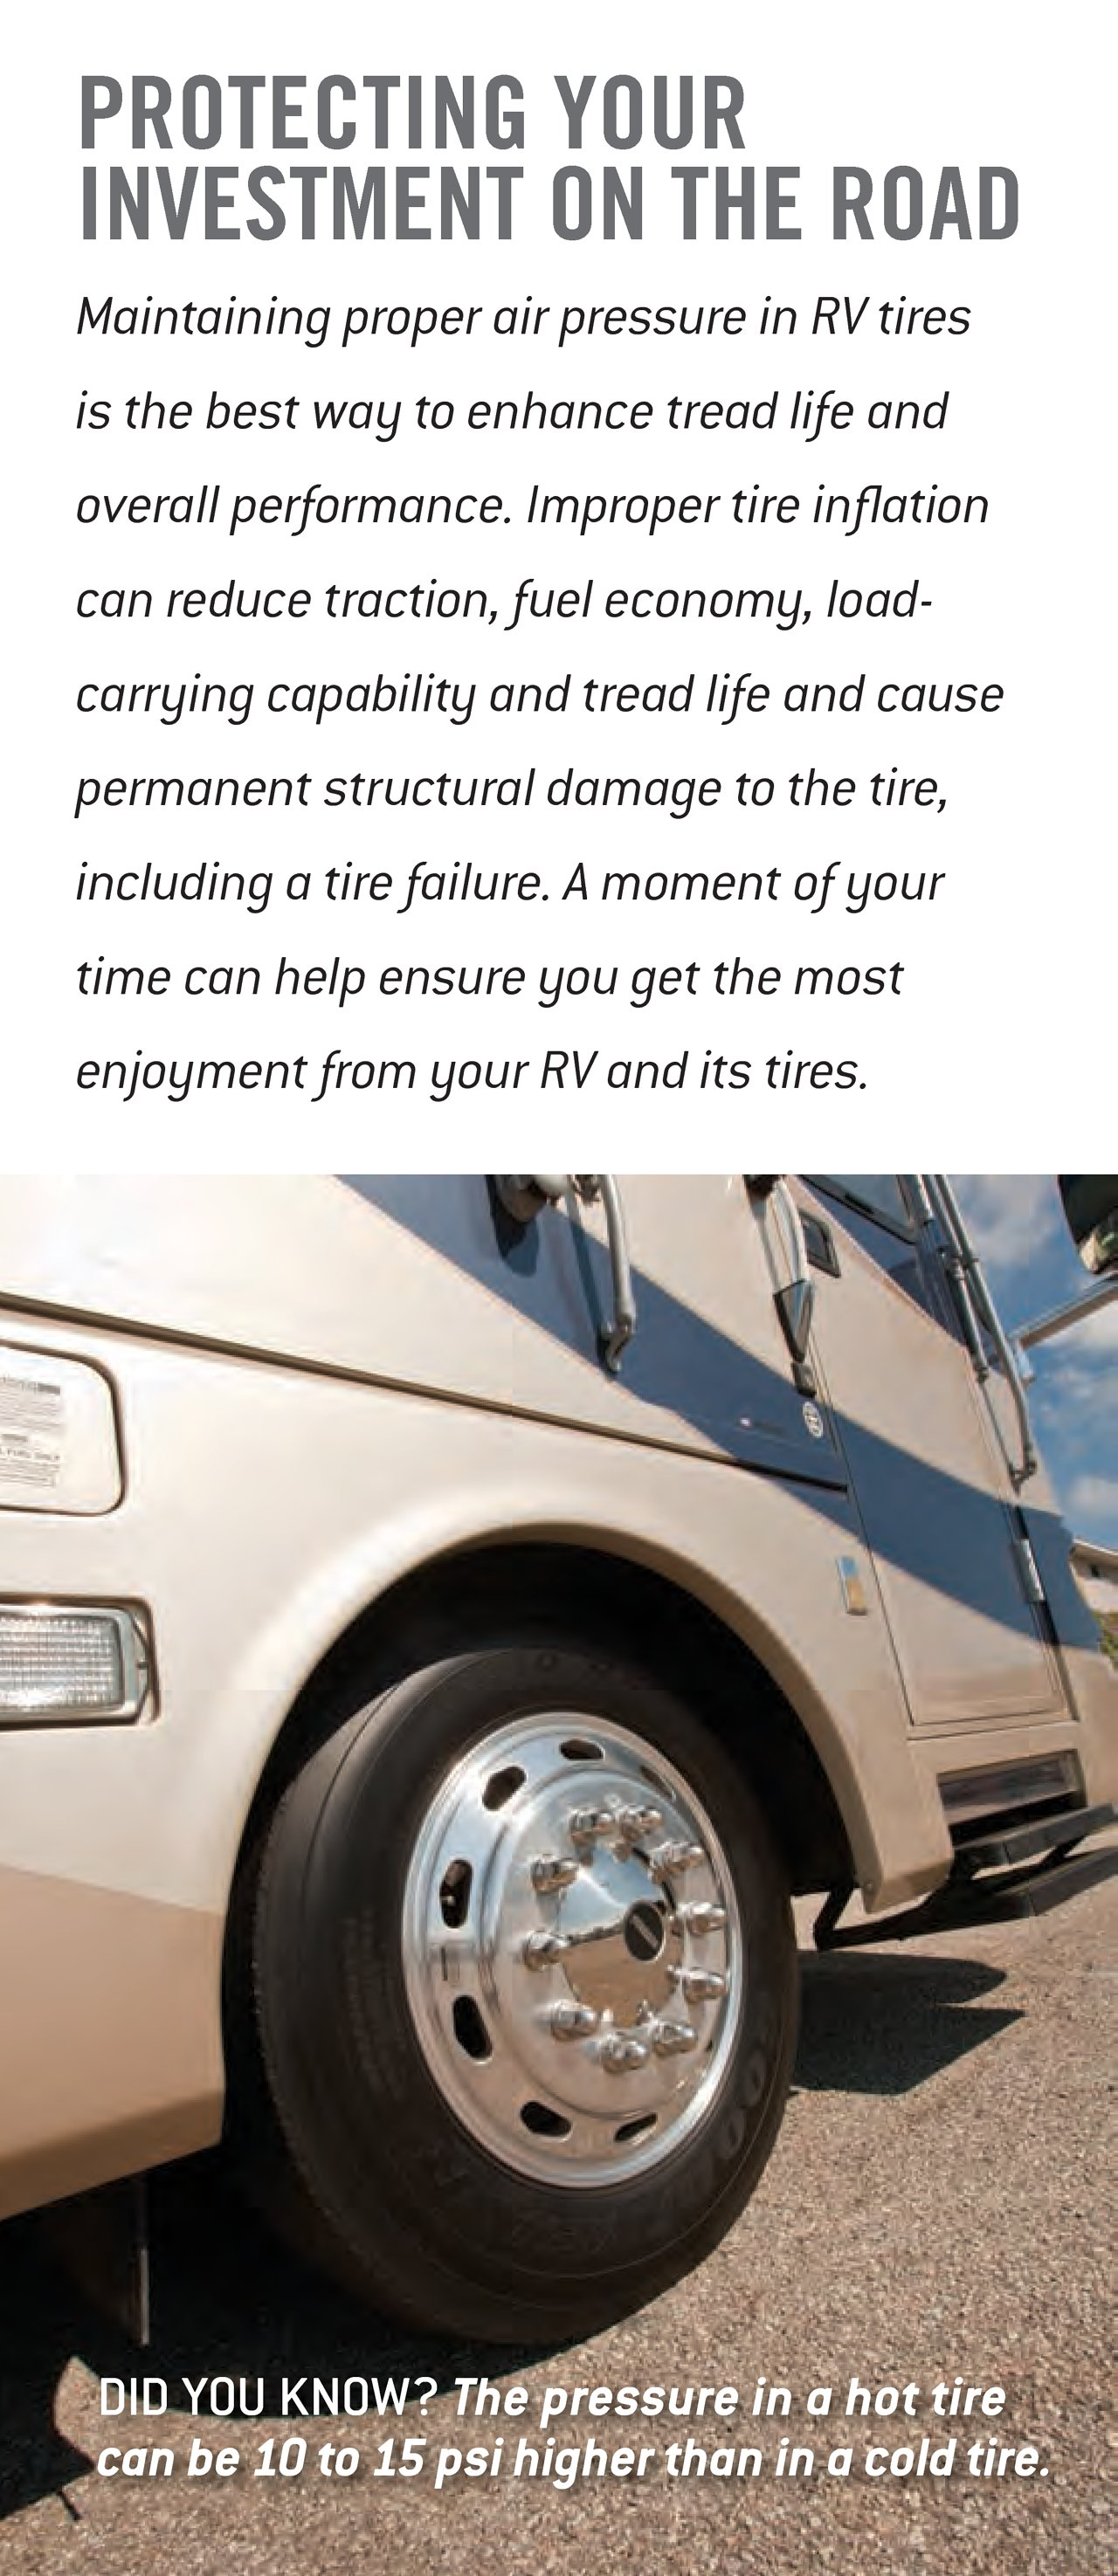 2014 Goodyear Rv Tire Maintenance And Inflation Tips Download Rv